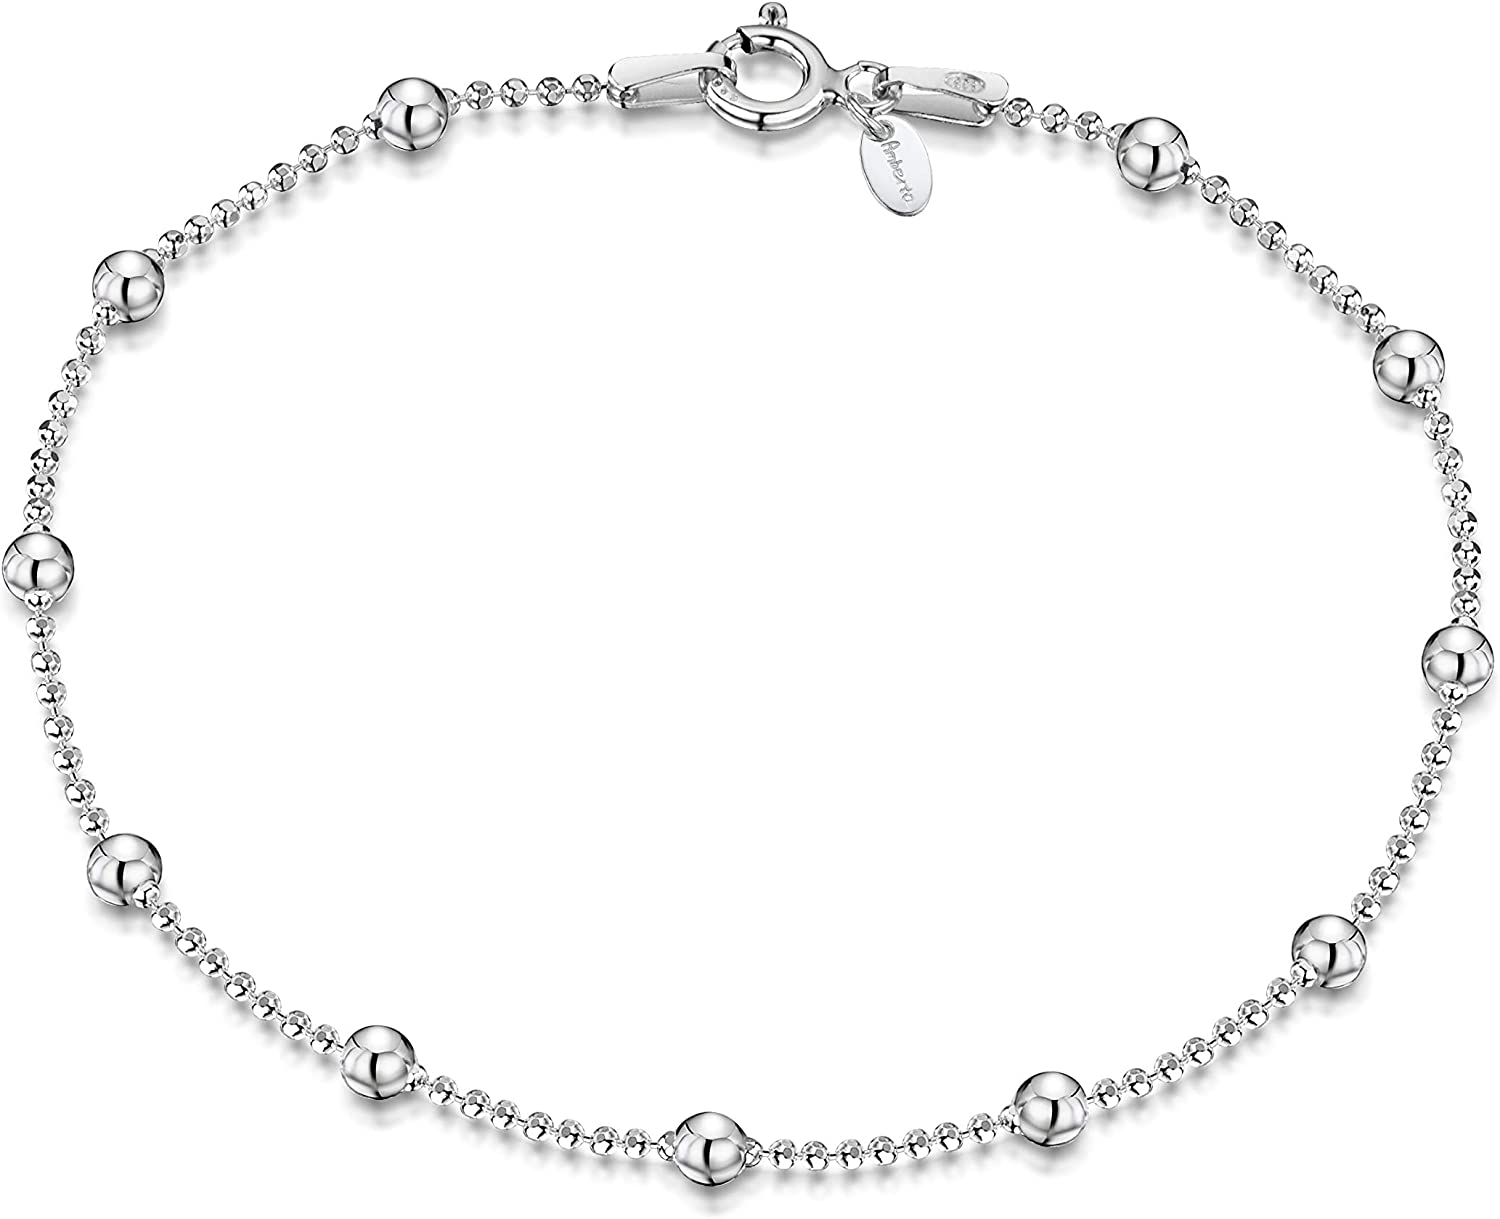 Amberta 925 Sterling Silver 3.2 mm Chain Ball Brac Bead 1.1 All items in the store NEW before selling ☆